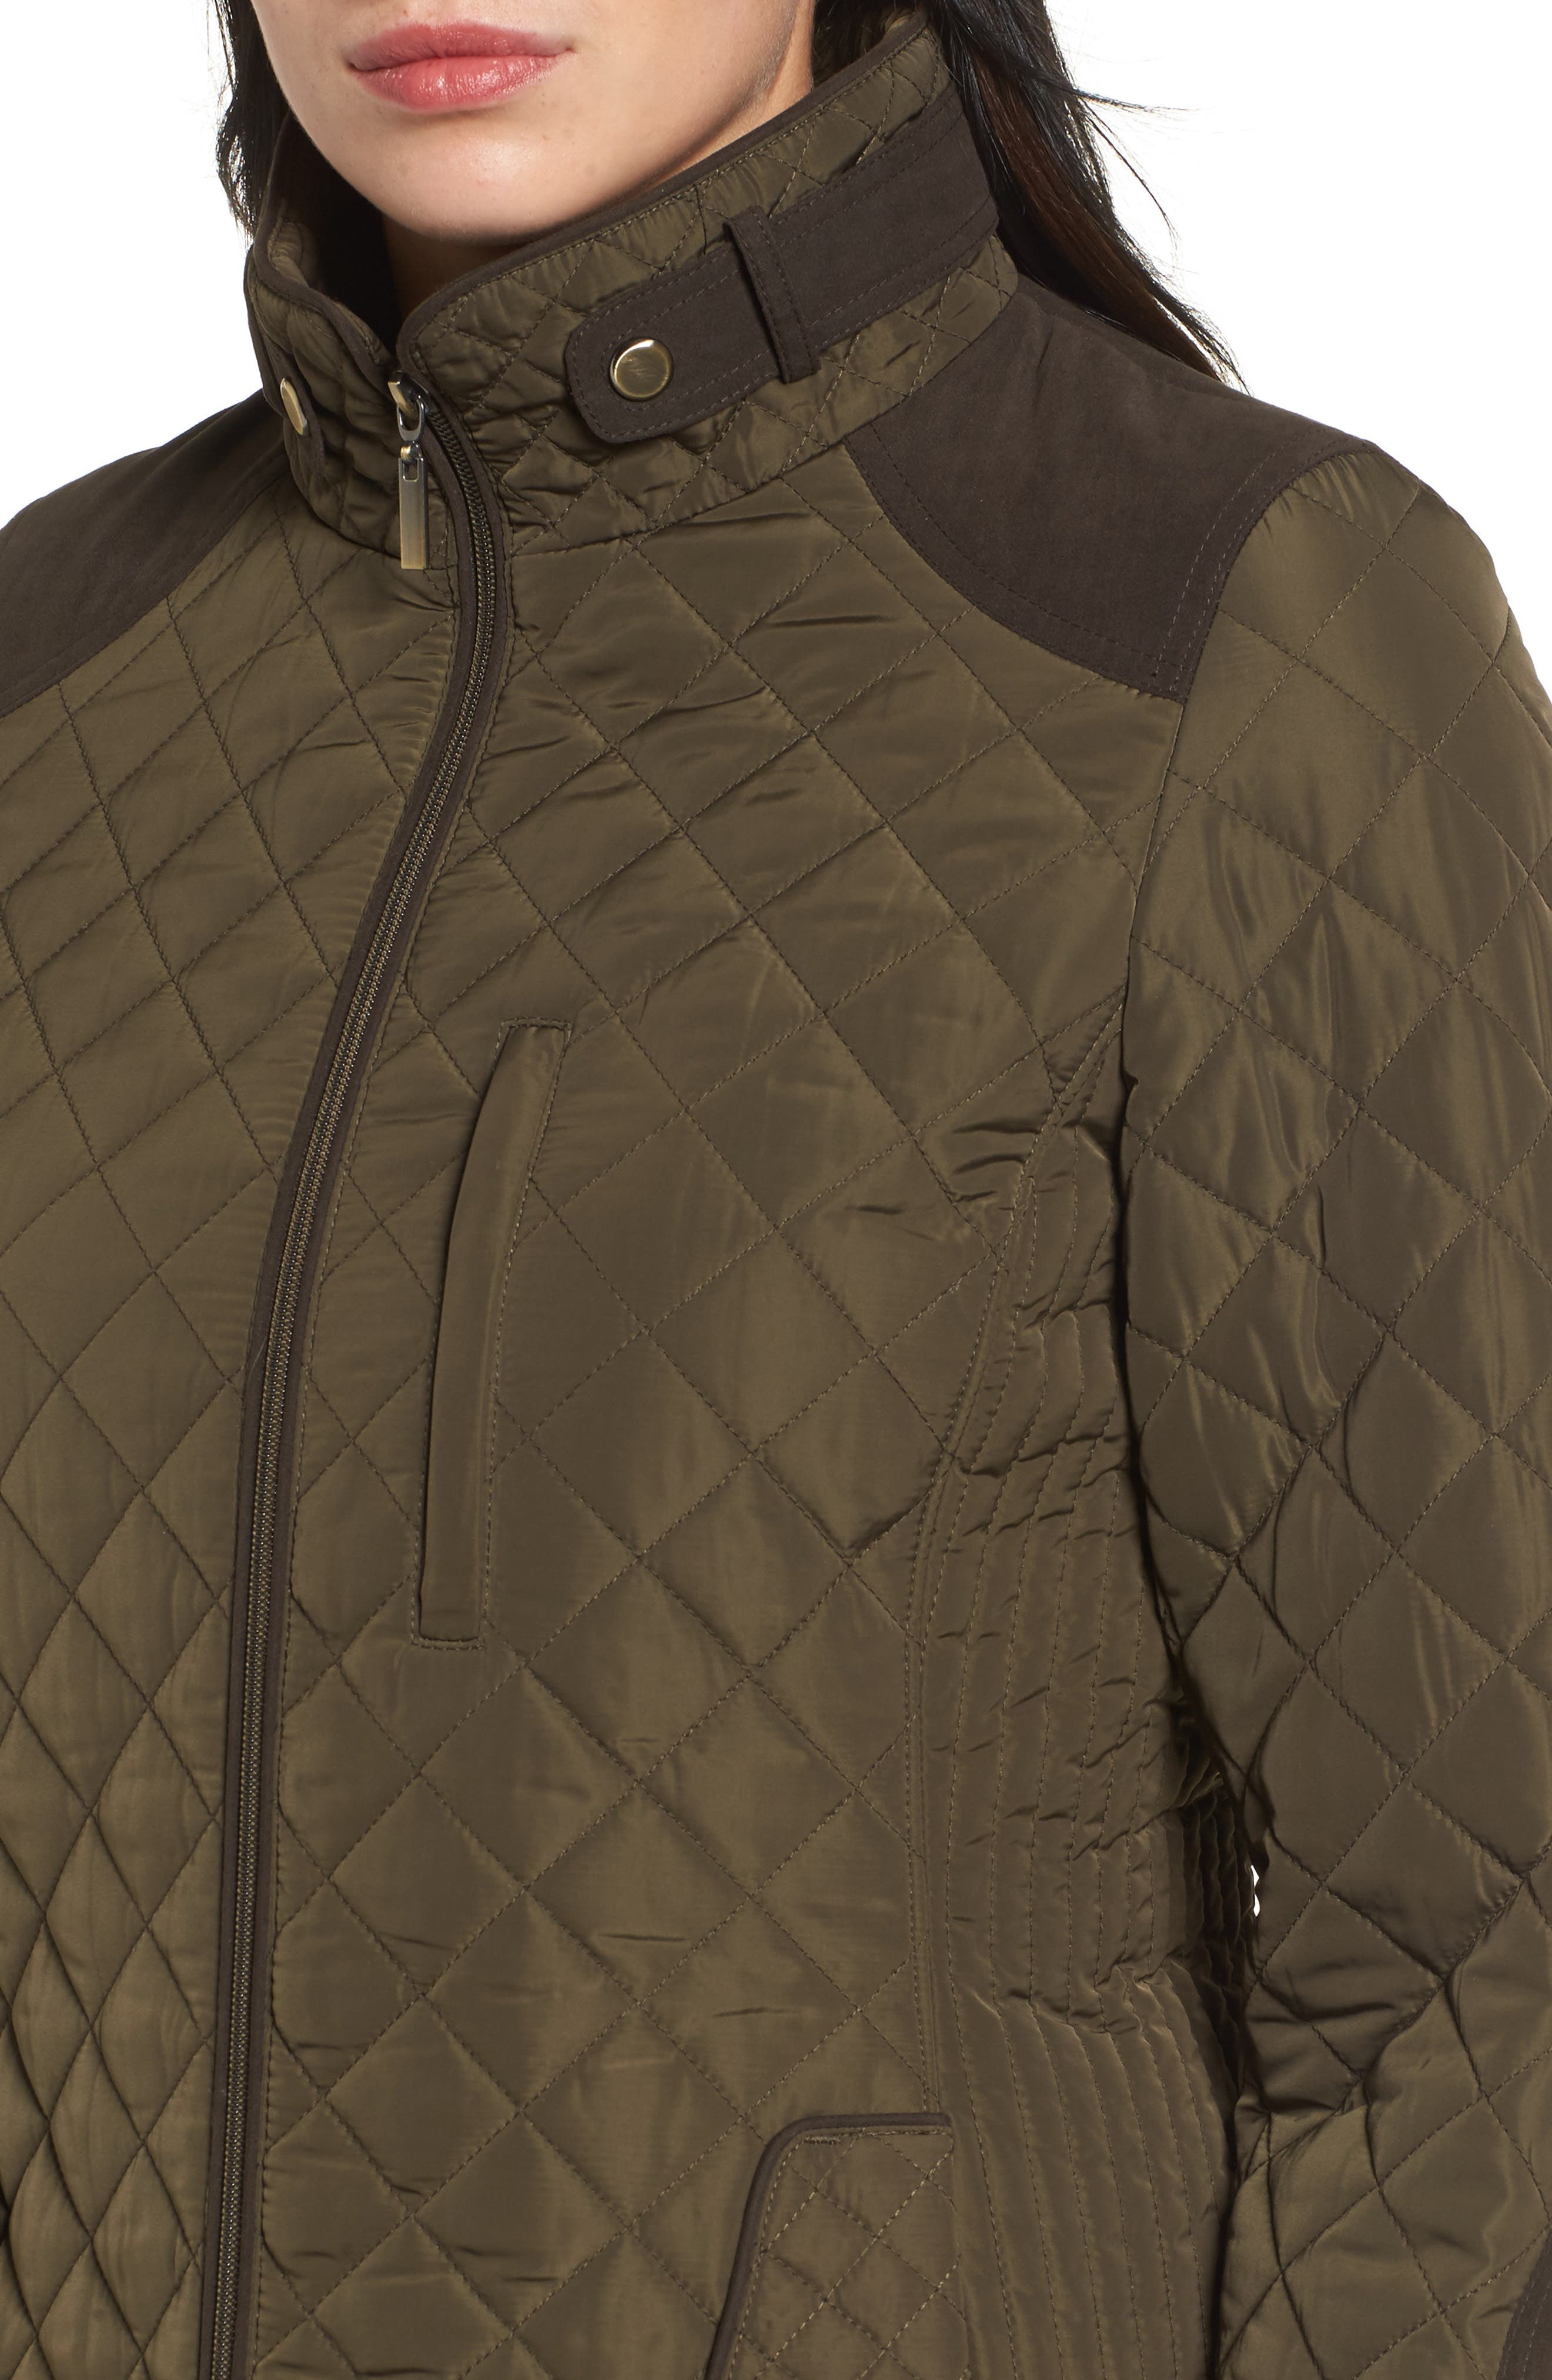 Insulated Jacket,                             Alternate thumbnail 4, color,                             Fatigue